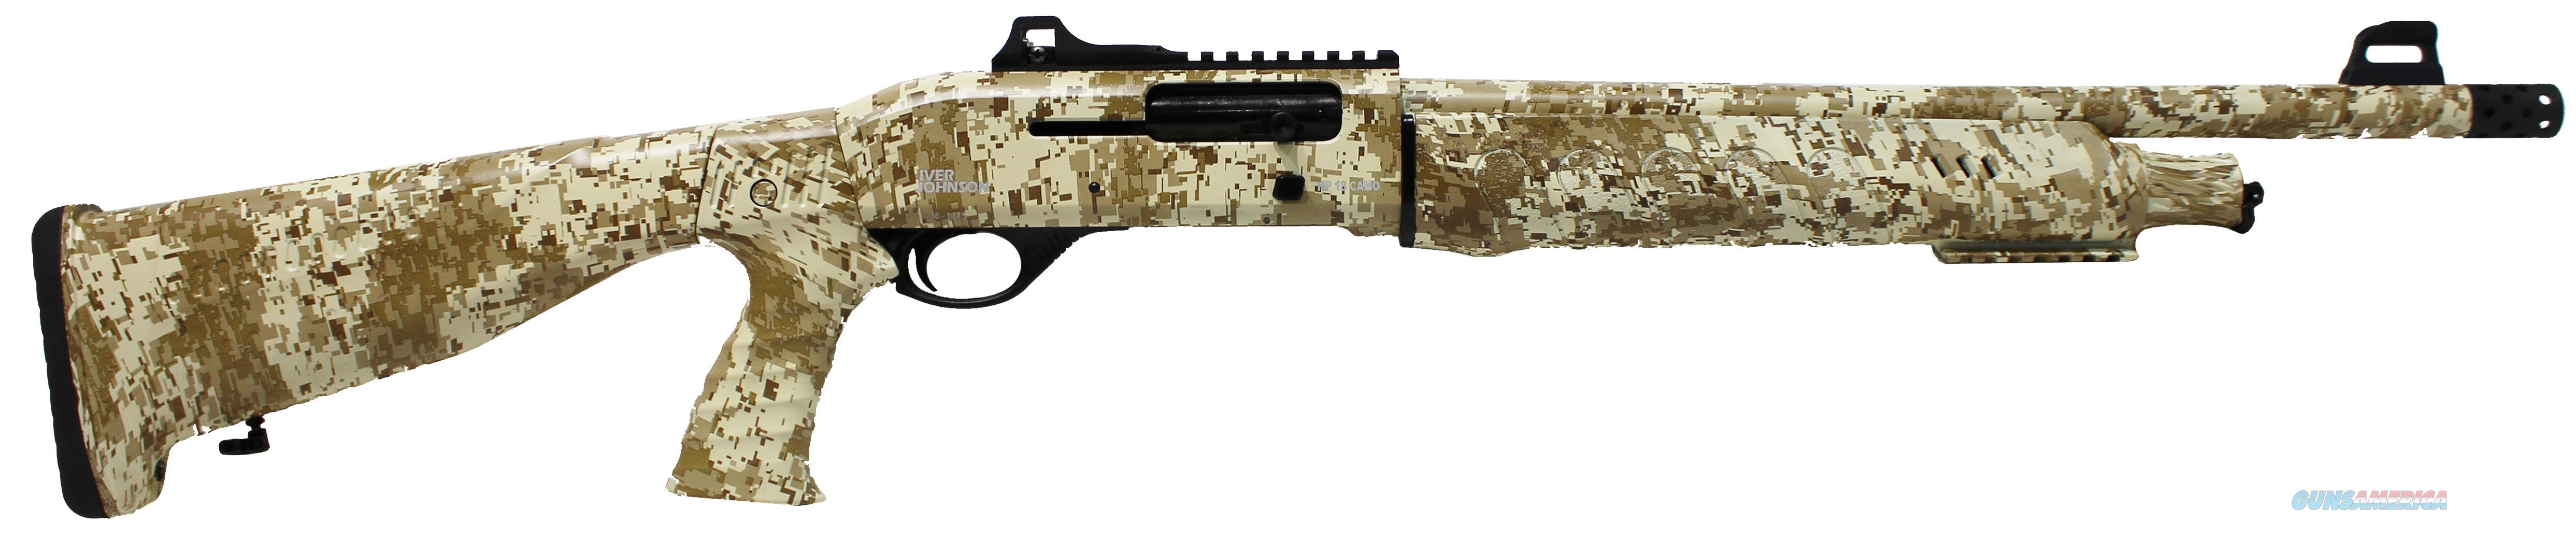 Iver Johnson Arms HP18 12ga Semi digital tan camo NEW  Guns > Shotguns > Iver Johnson Shotguns